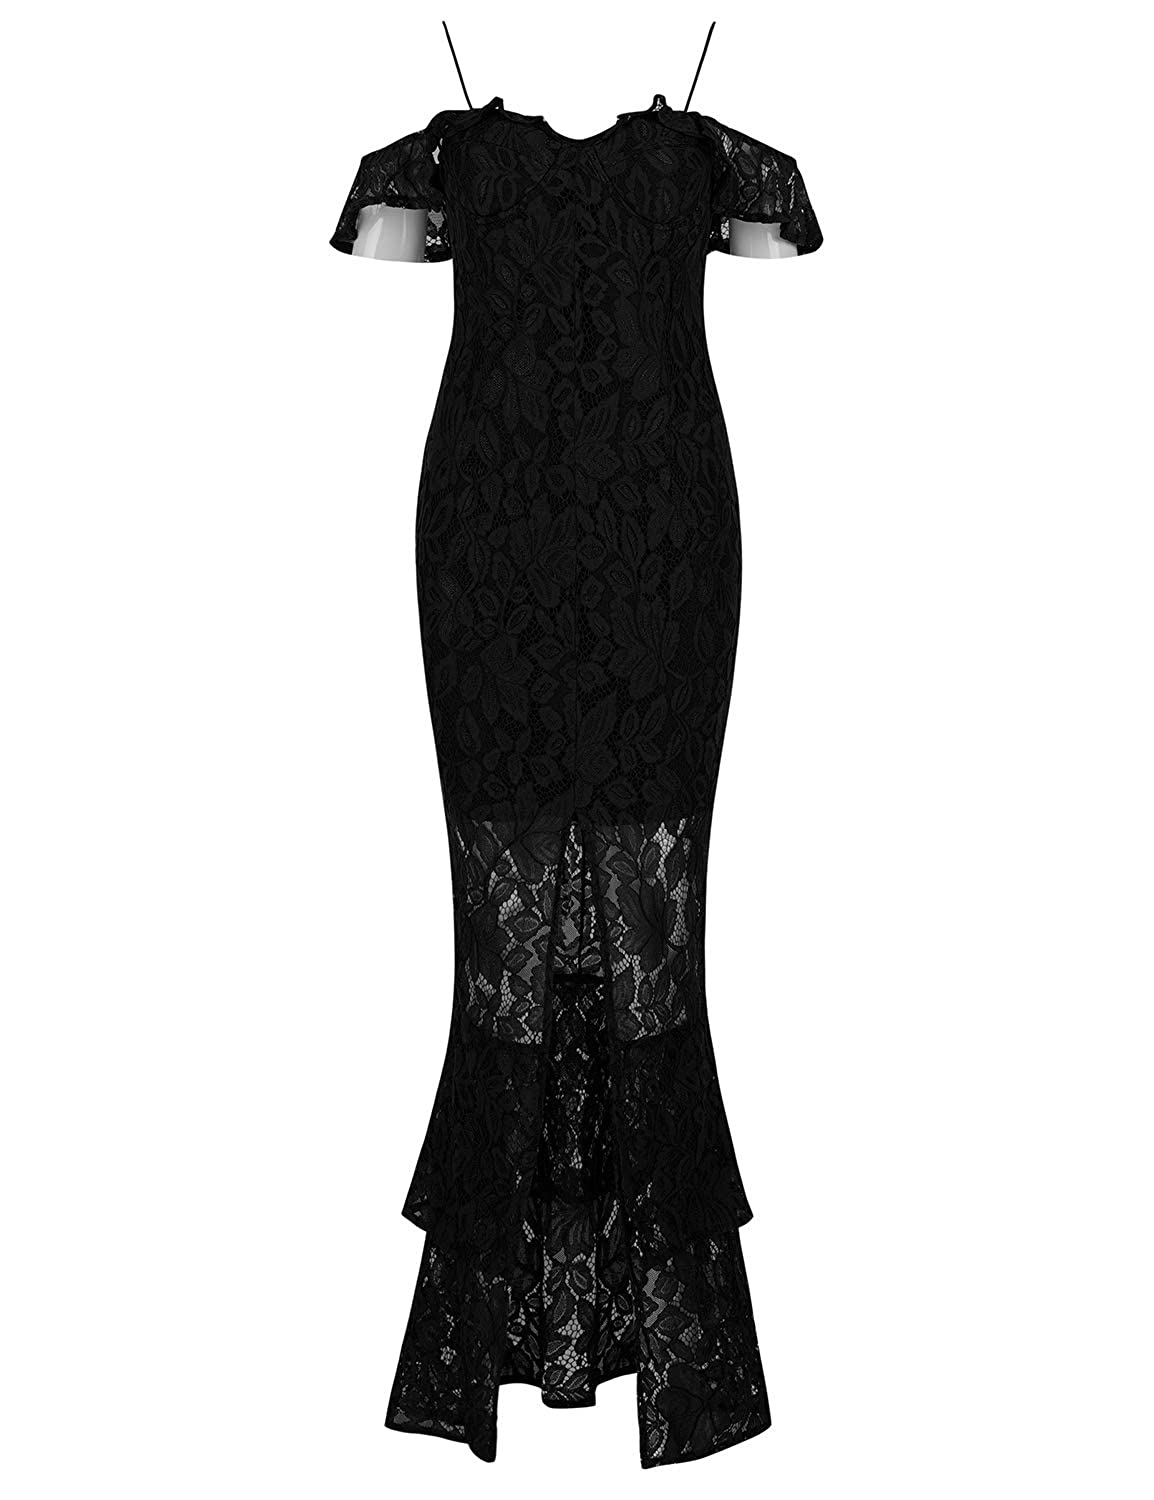 Hego Womens Off Shoulder Mermaid Bandage Lace Gown Cocktail Evening Wedding Club Party Dresses H5625